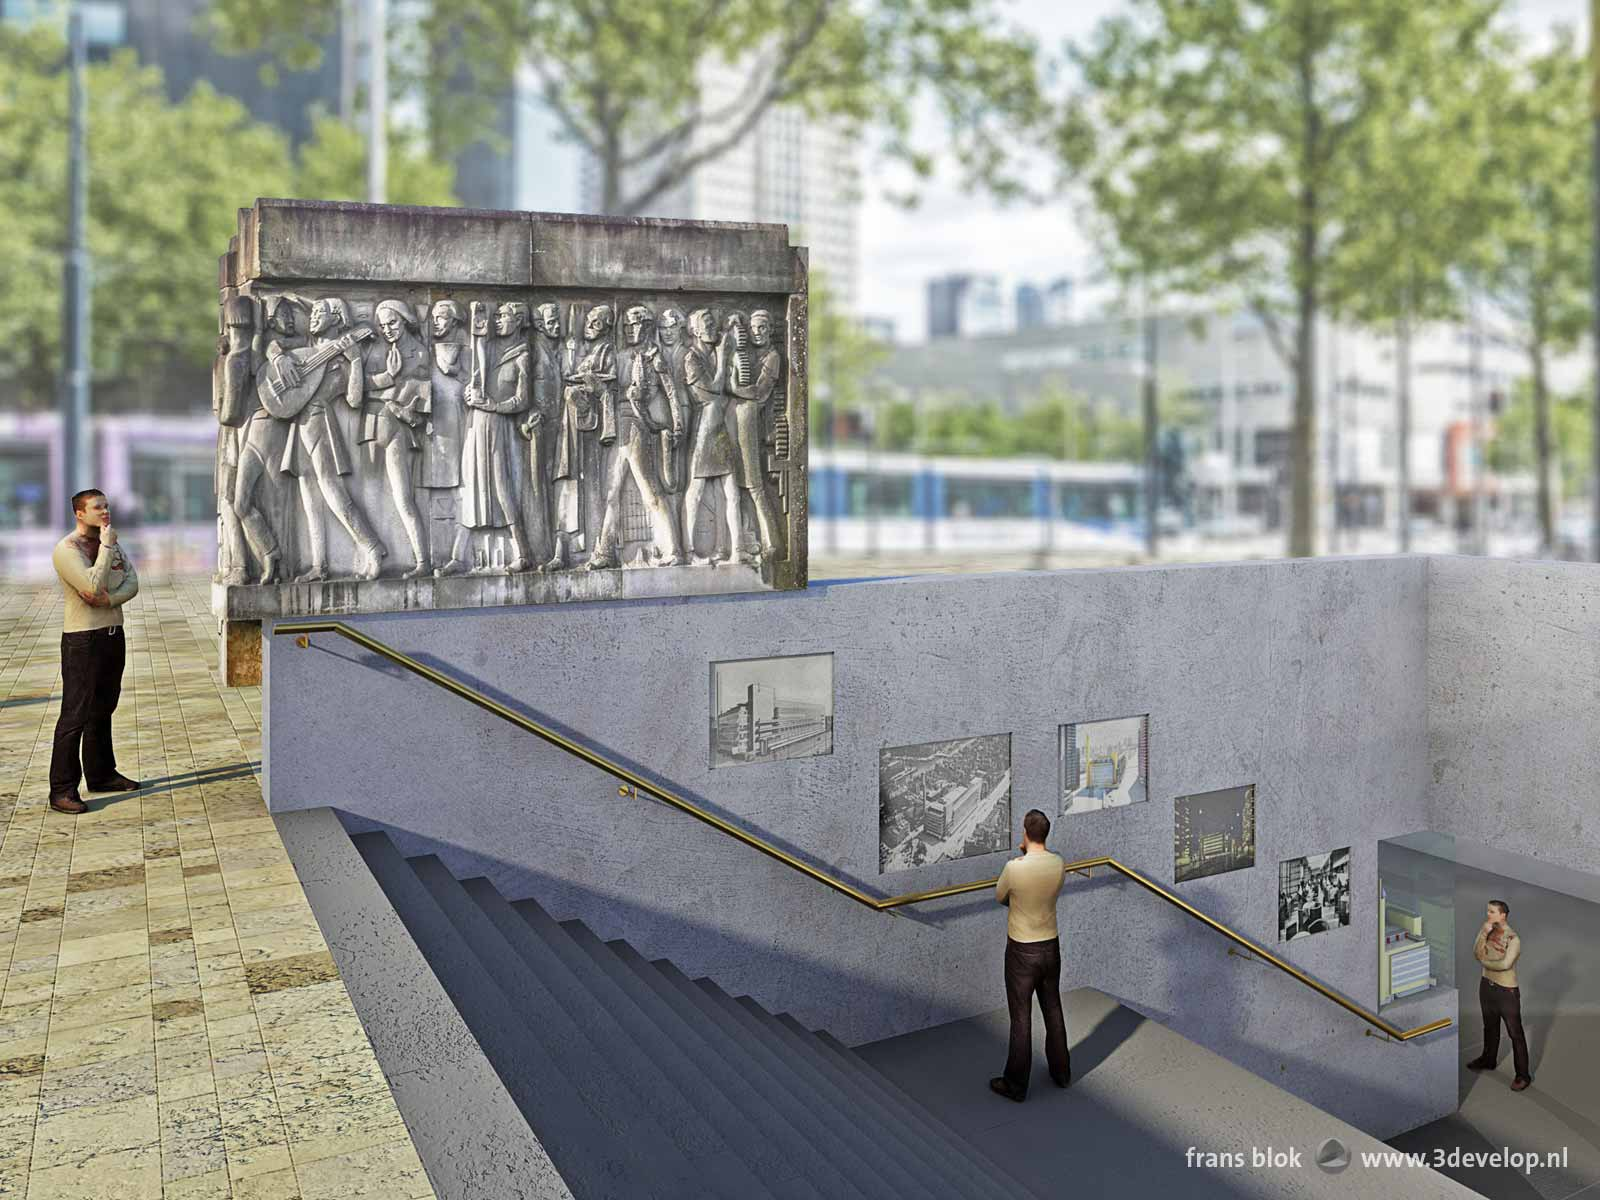 Proposal for the integration of the facade sculpture from the old Bijenkorf store by W.M. Dudok in a new entrance to Beurs metro station in Rotterdam, The Netherlands